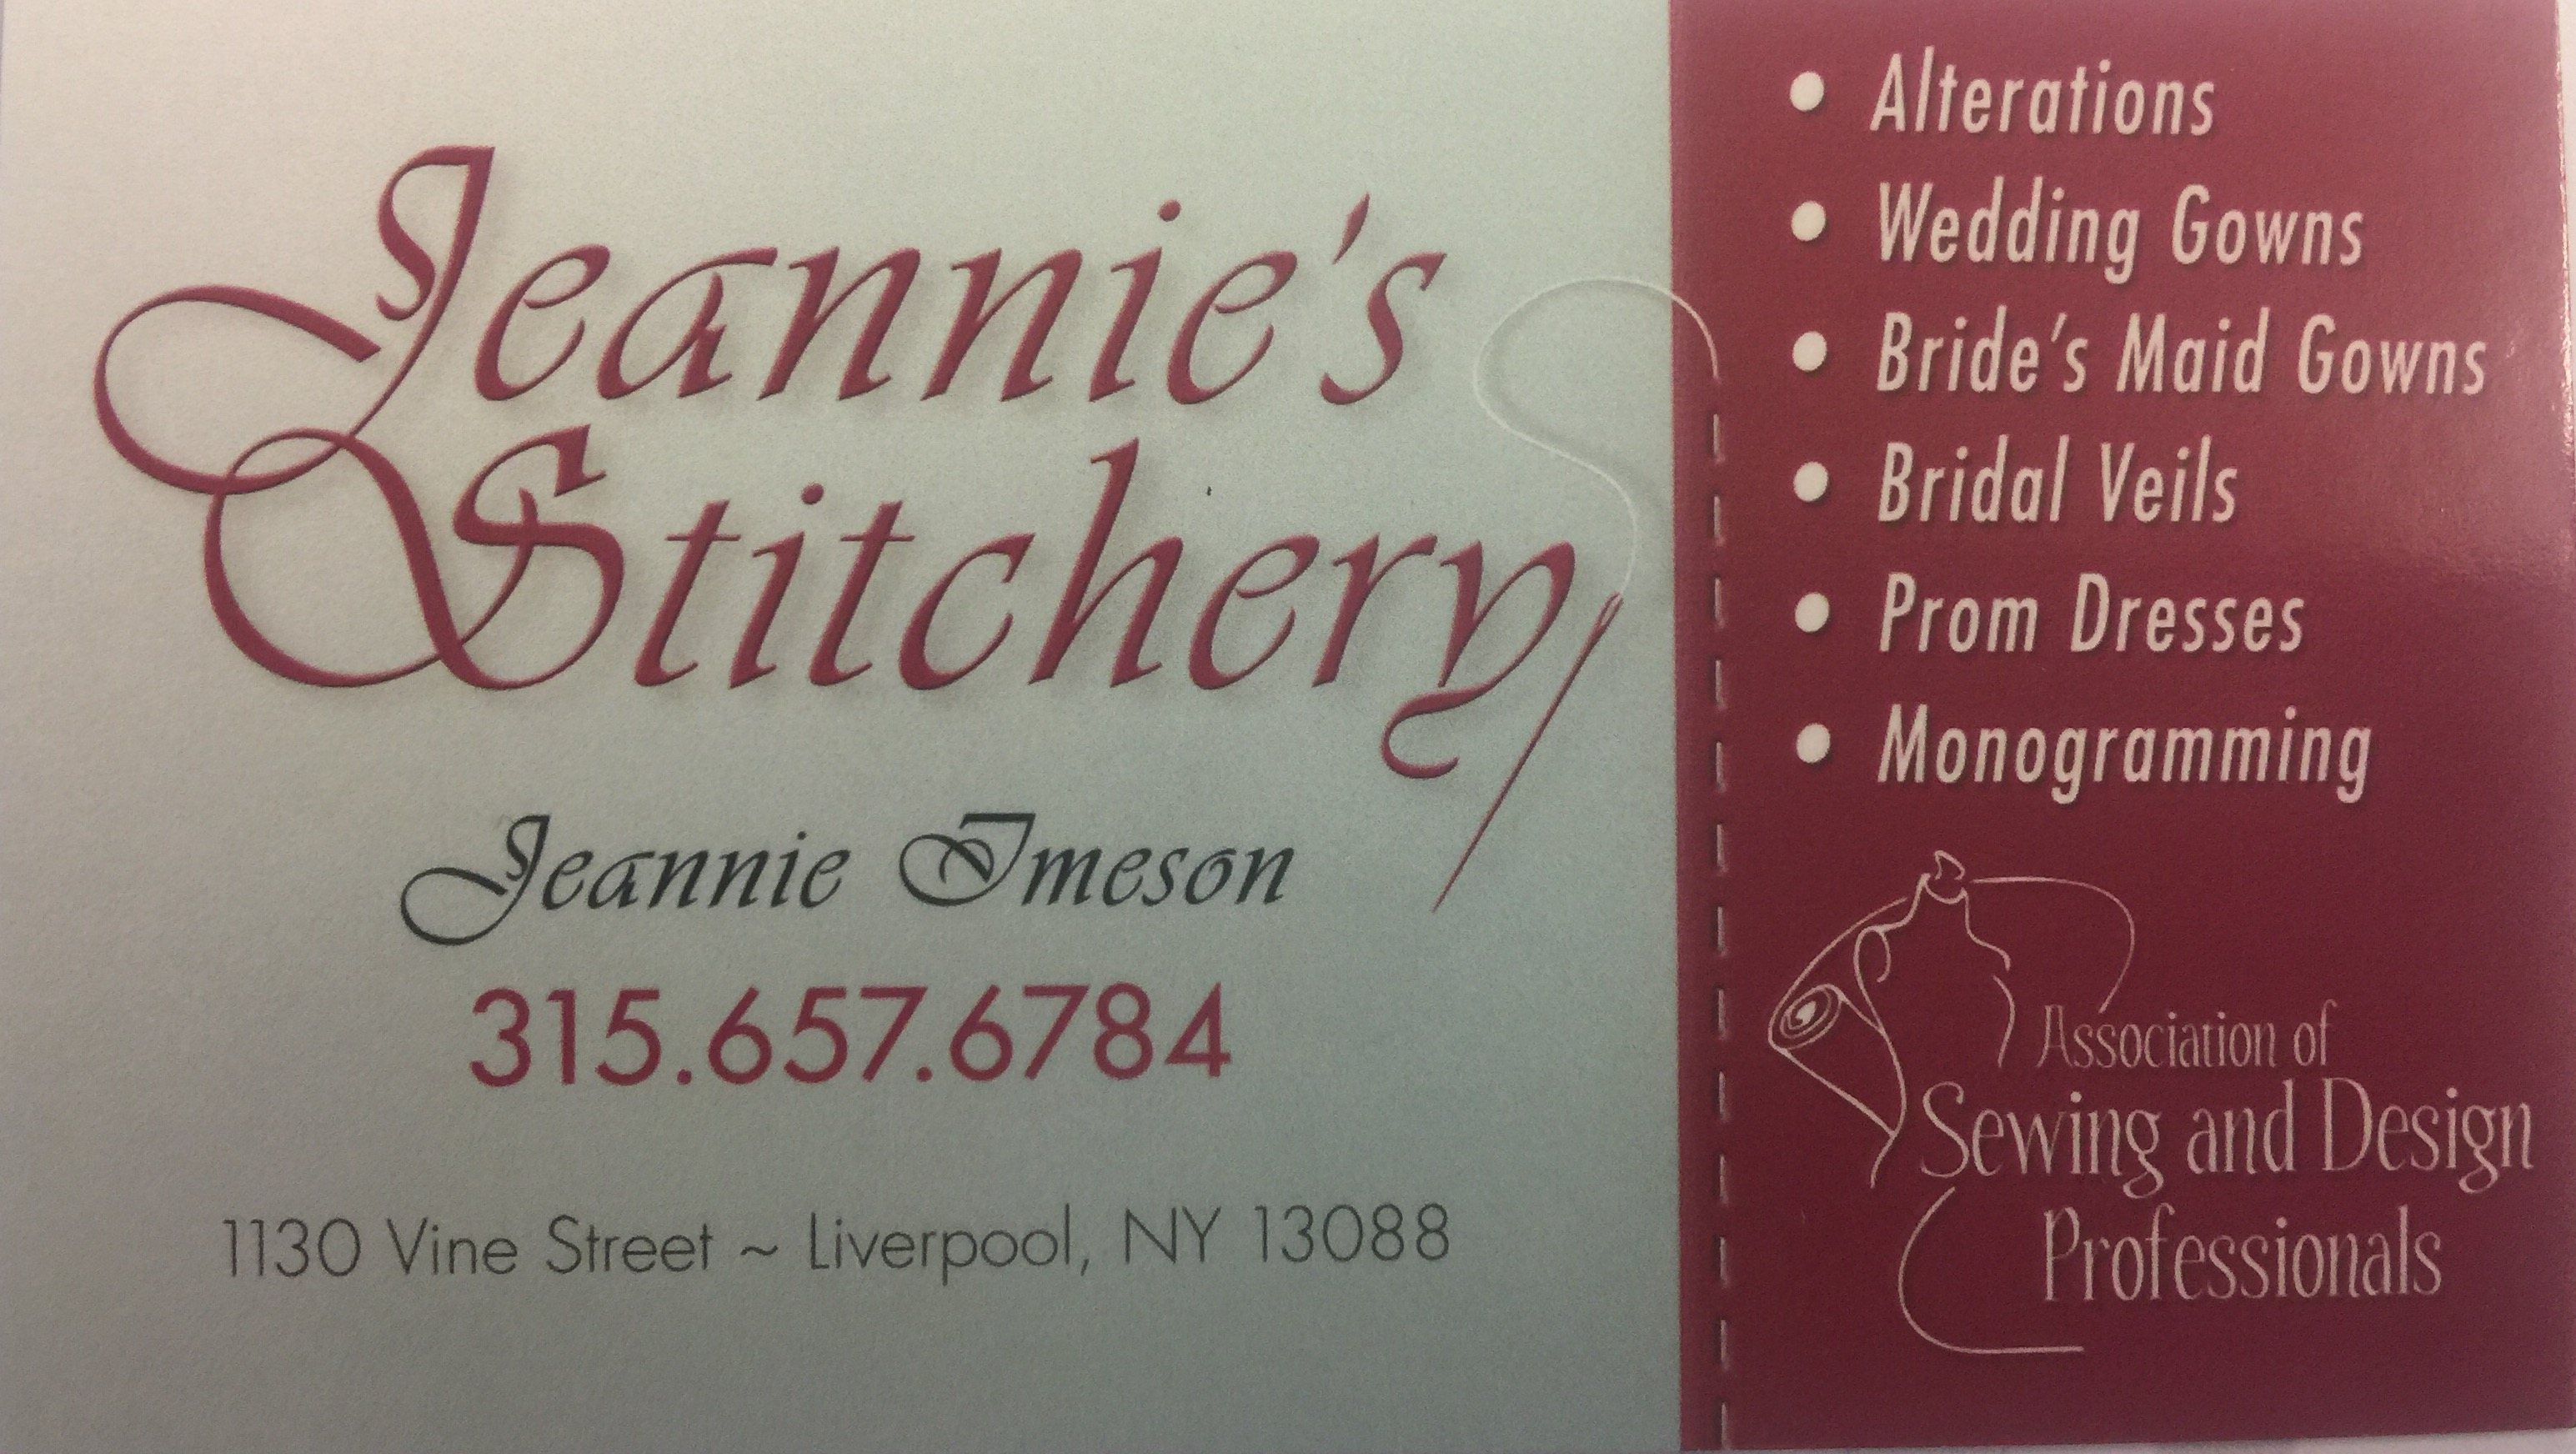 jeannie s stitchery liverpool ny yp com alterations on bridal attire others